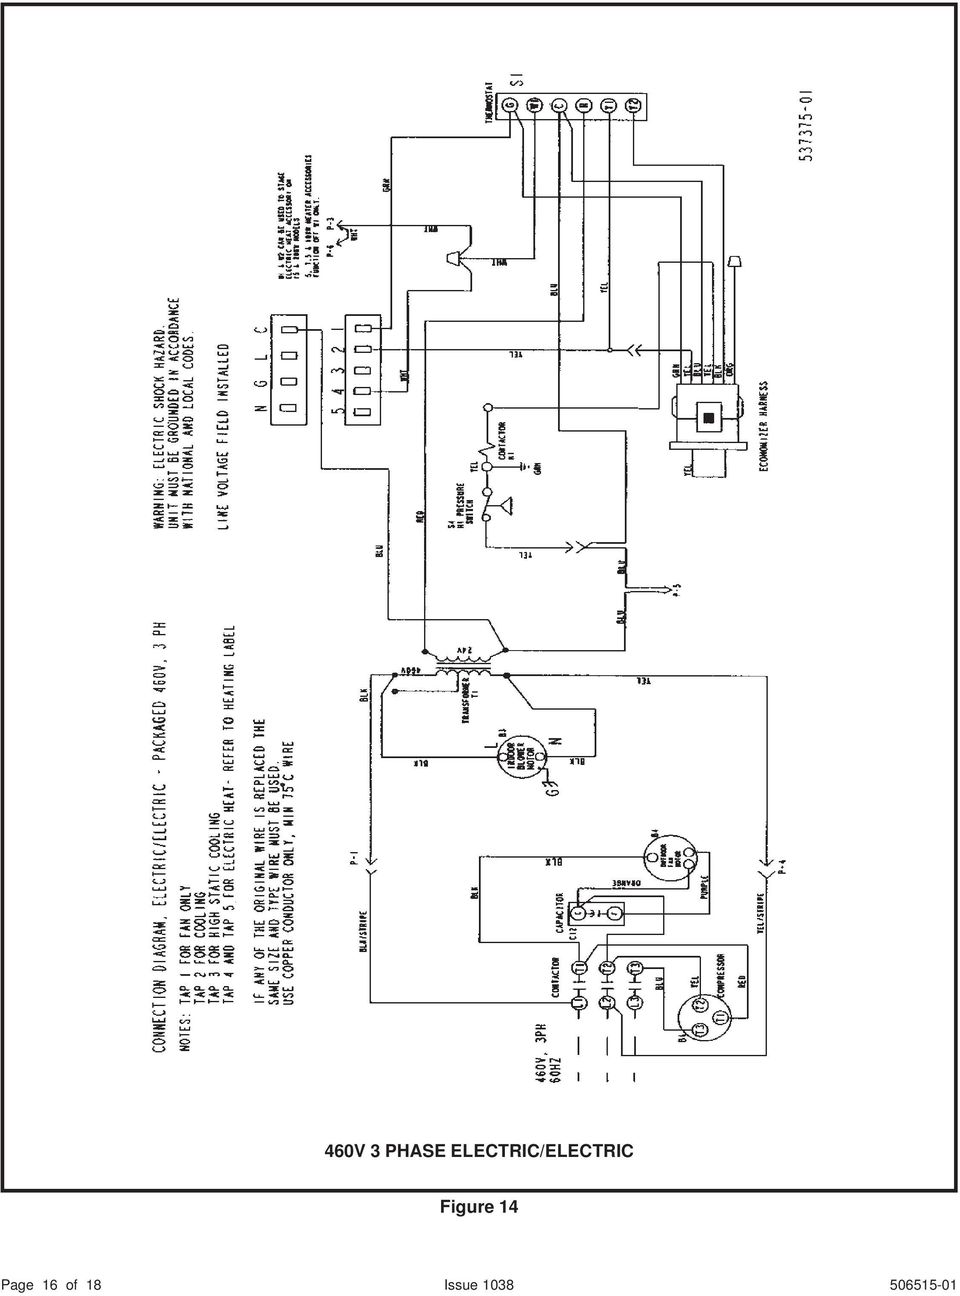 Beverage Air Wiring Schematic Just Another Diagram Blog Connected Wires Symbol Baseboard Heater Besides Diagrams Rh 18 2 5 Aquarium Ag Goyatz De Electrical